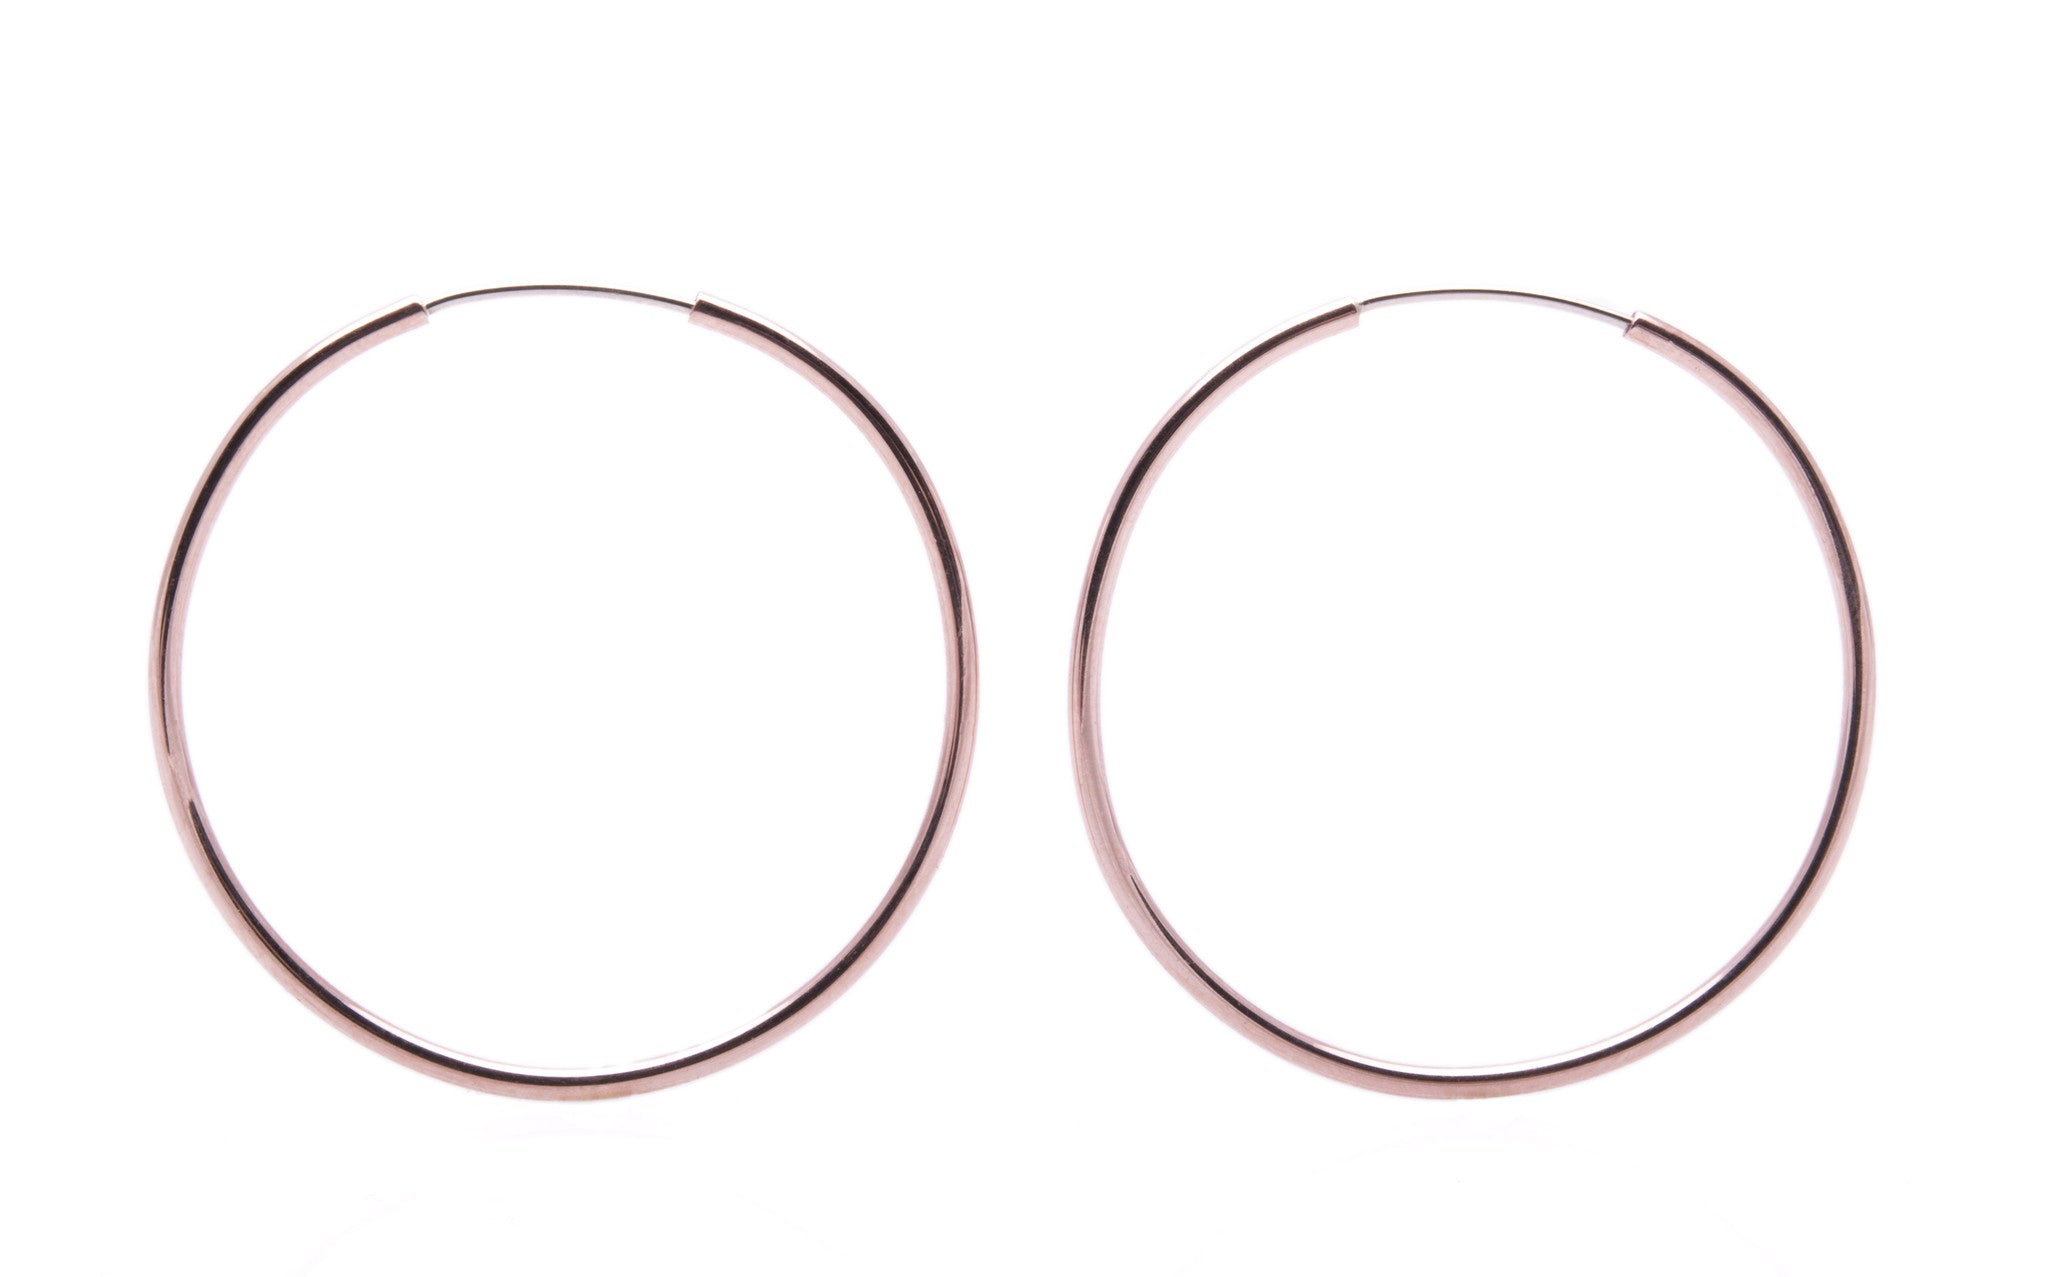 35mm Hard Wire Hoop Hoops Large Wendy Nichol Fine Jewelry Designer Handmade in NYC solid 14k Yellow Rose White Gold